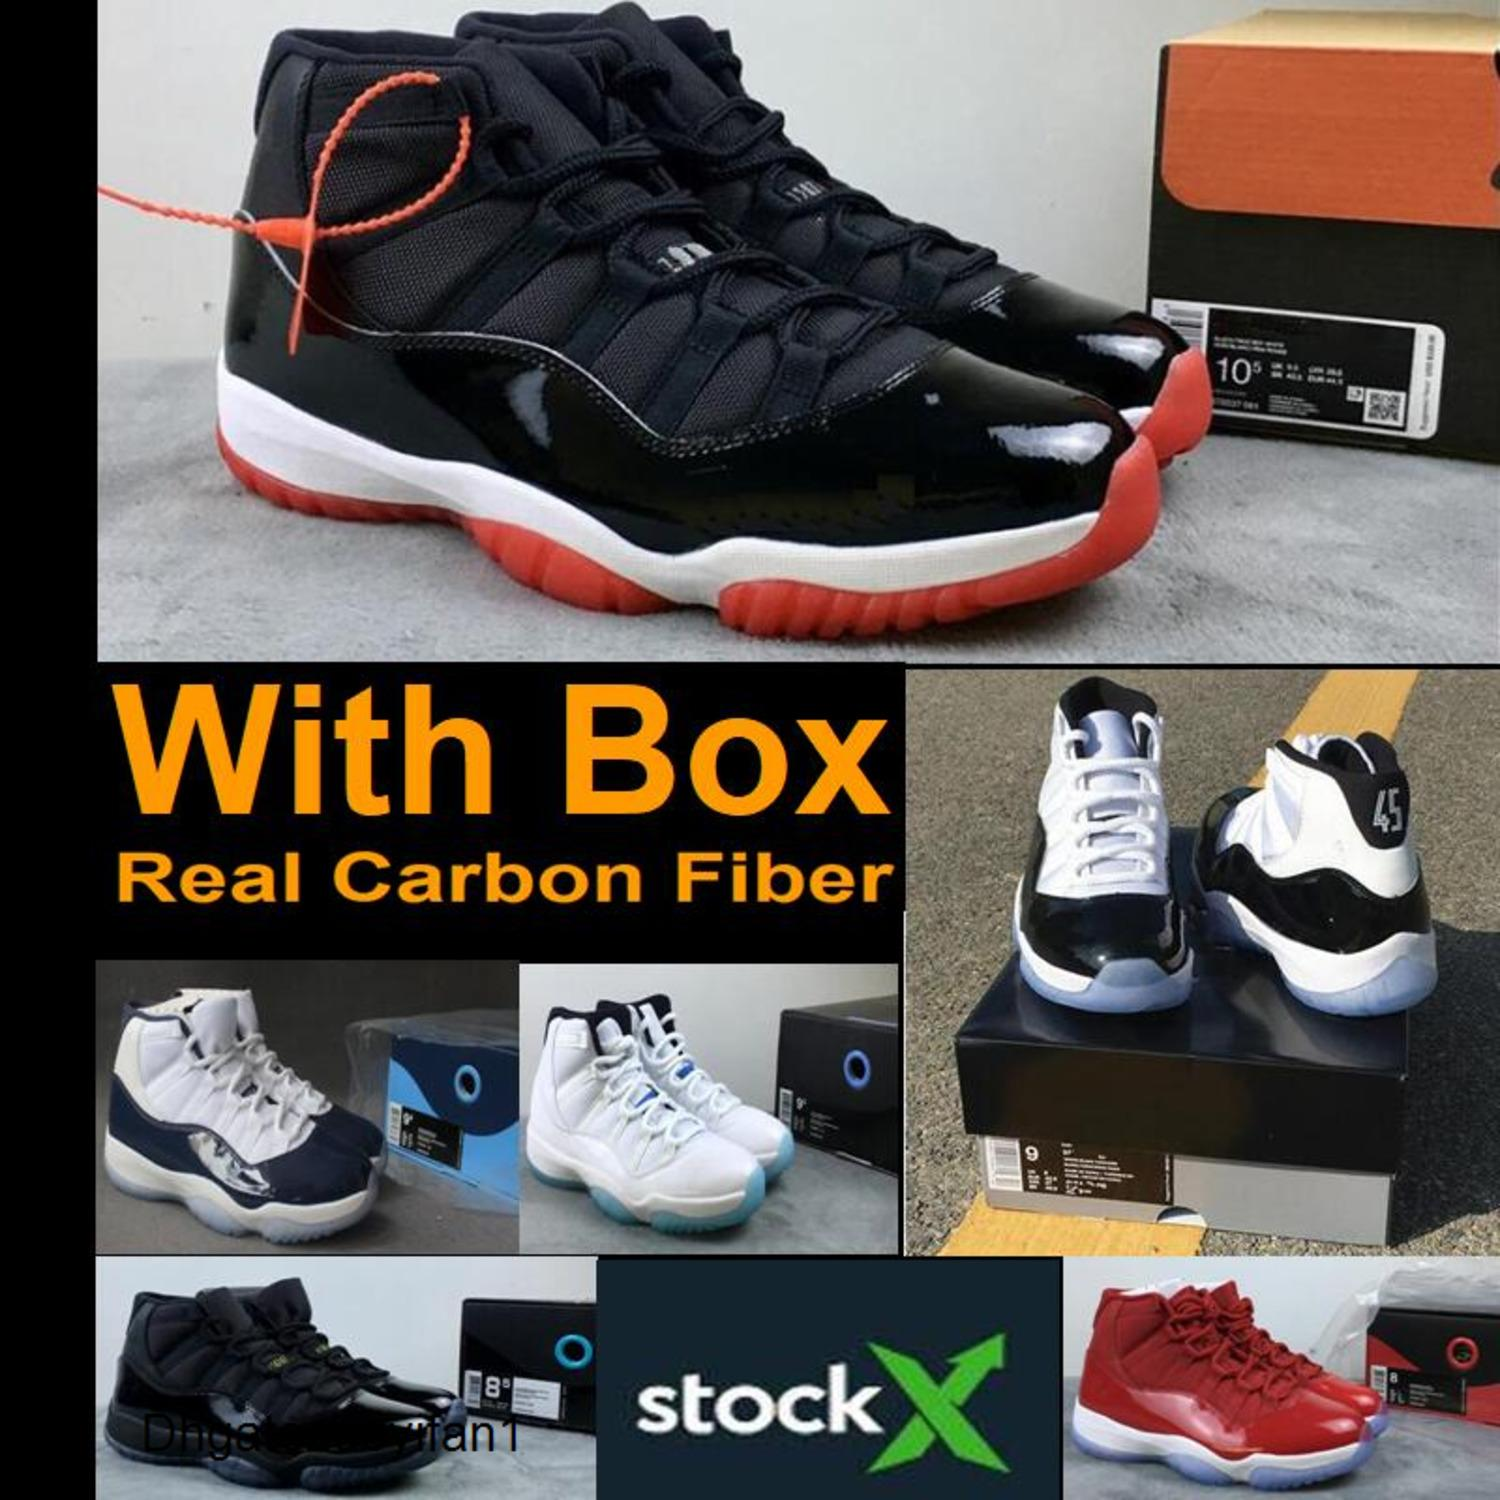 New 2019 Bred 11s Real Carbon Fiber Concord 11 Win Like 82 Space Jam Basketball Shoes With Box Sneakers Wholesale Men Gamma Blue